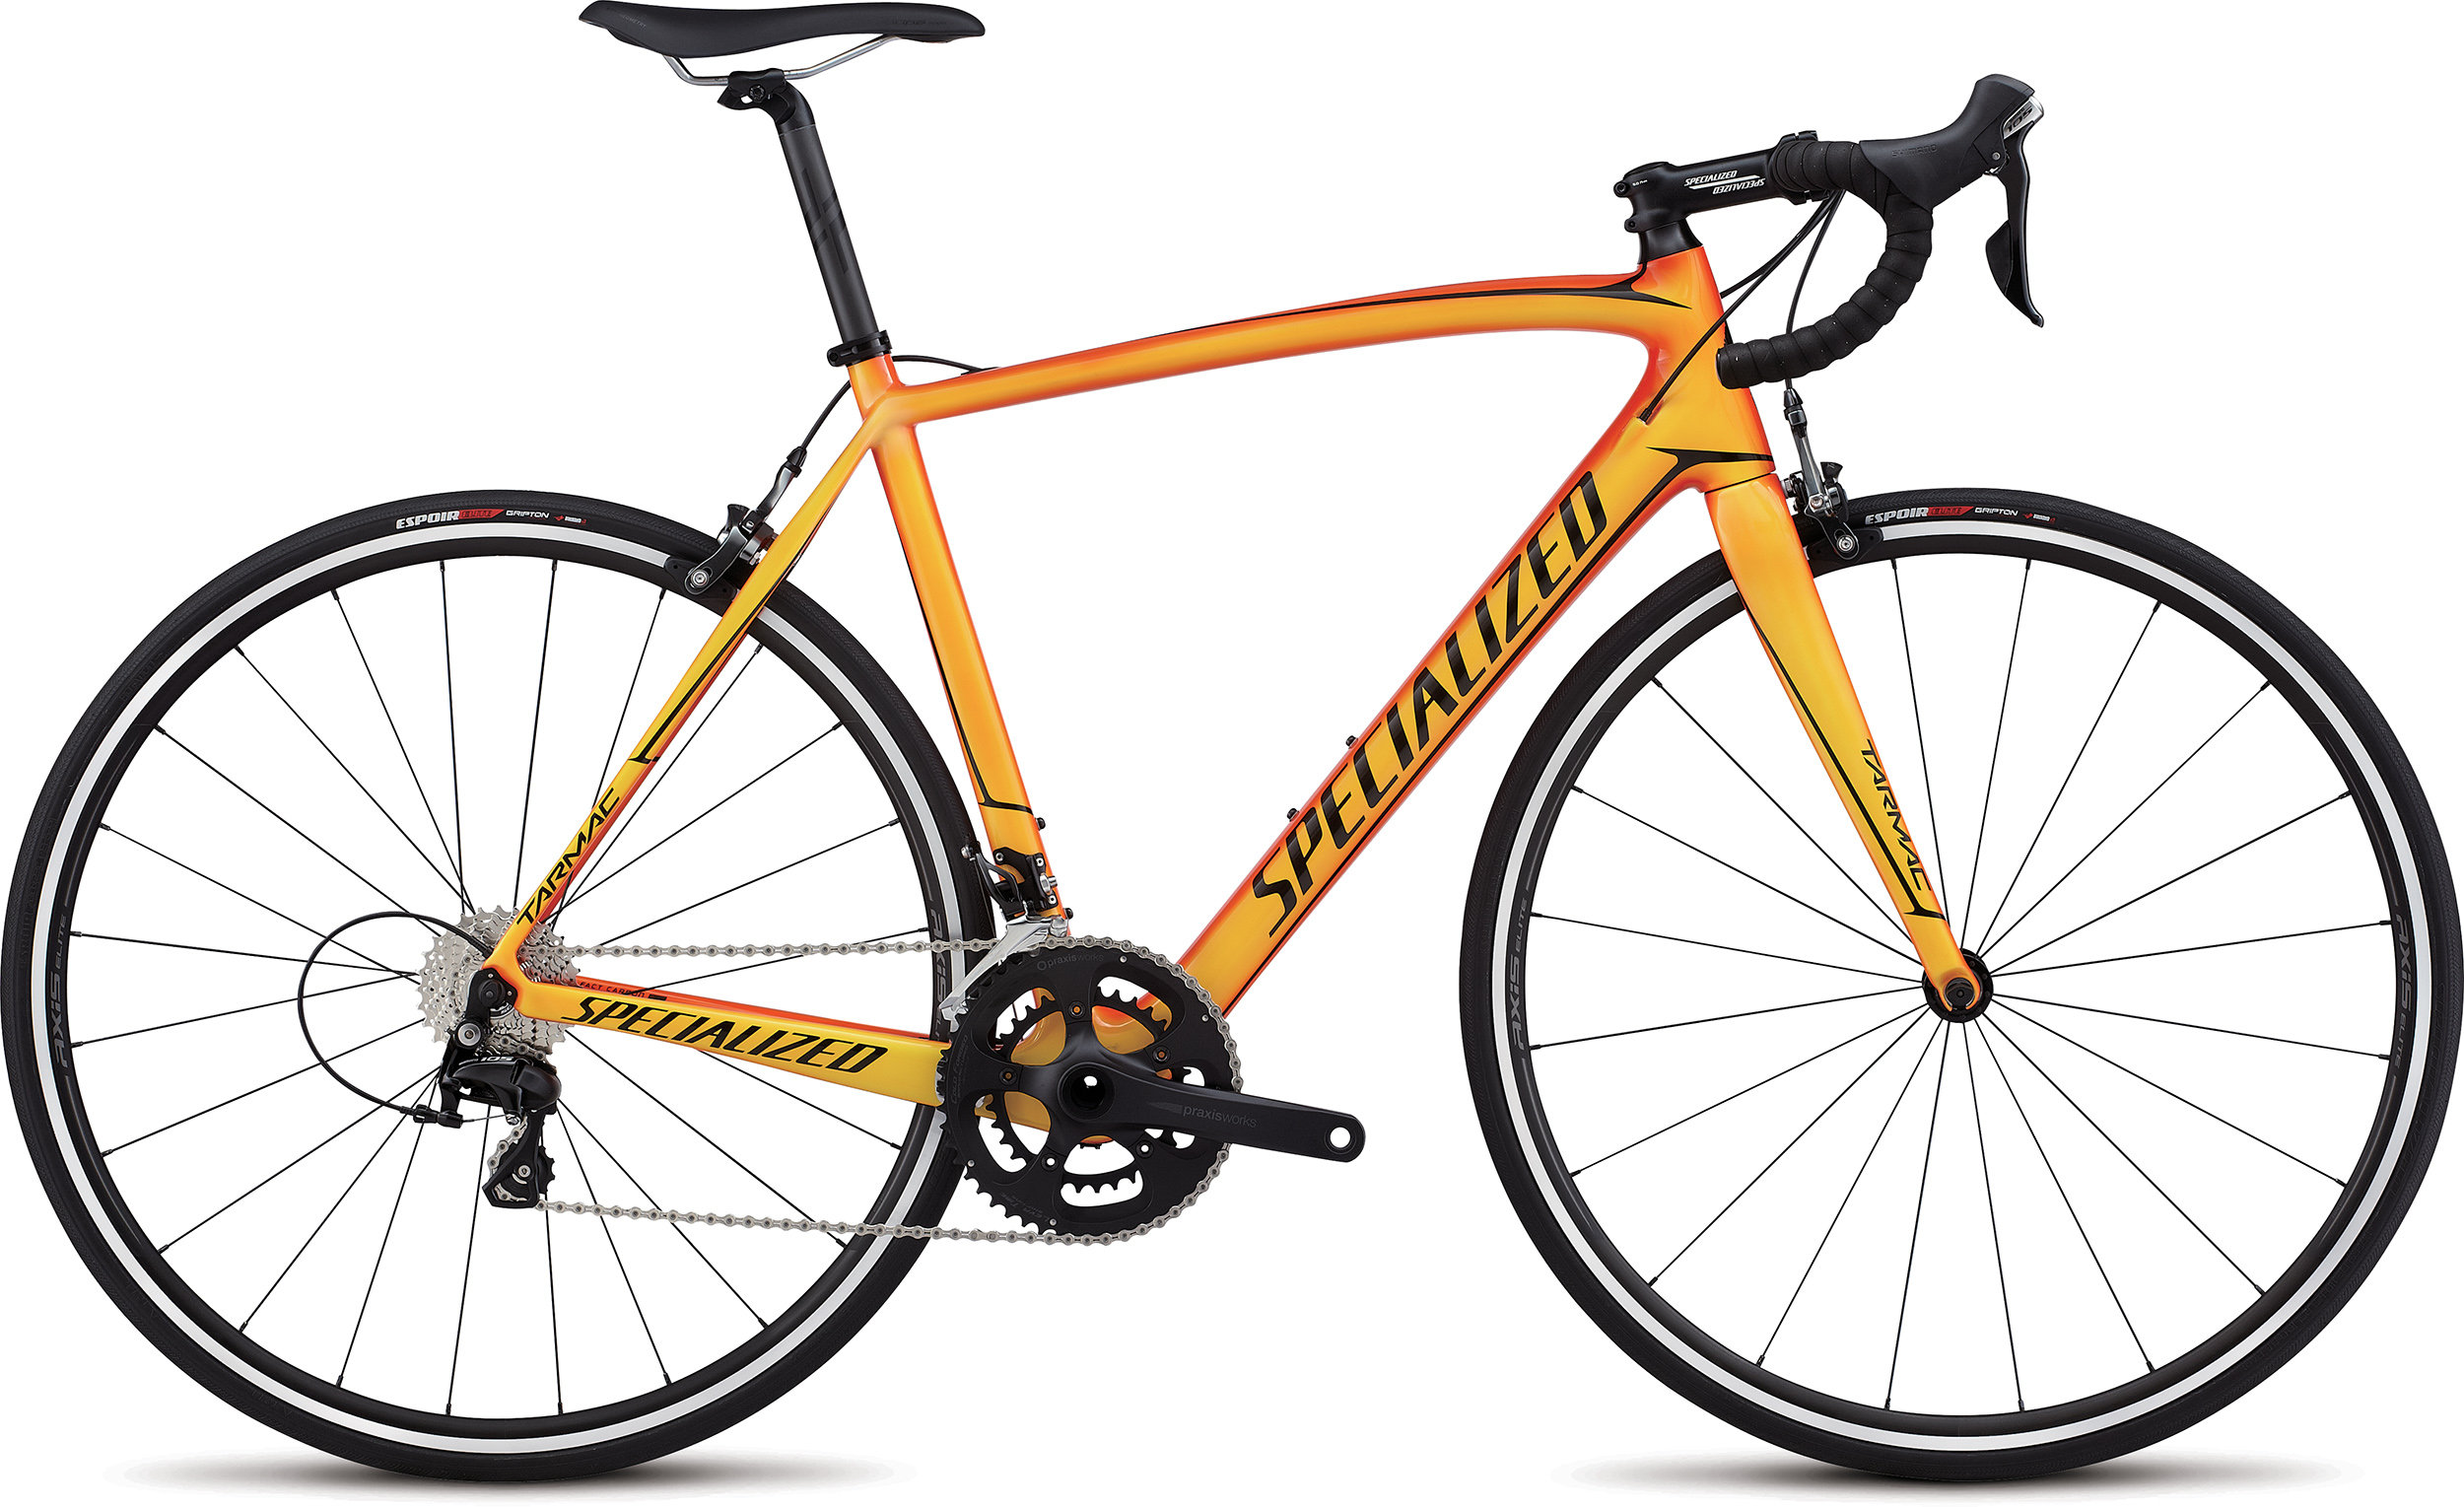 Specialized Tarmac SL4 Sport GLOSS MOTO ORANGE/BRIGHT YELLOW/TARMAC BLACK 56 - Alpha Bikes